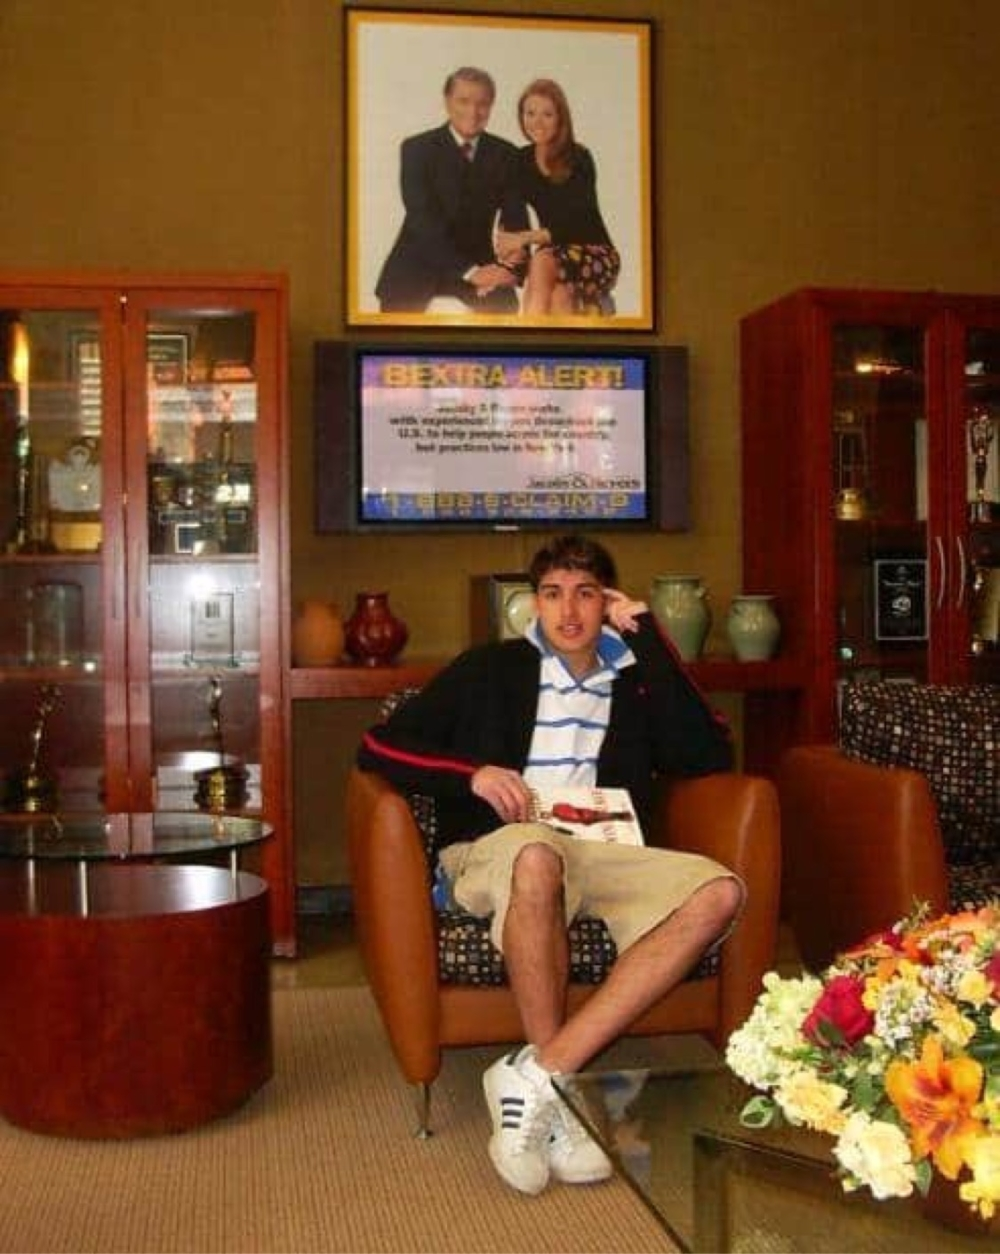 Chris Marine under portrait of Regis Philbin & Kelly Ripa